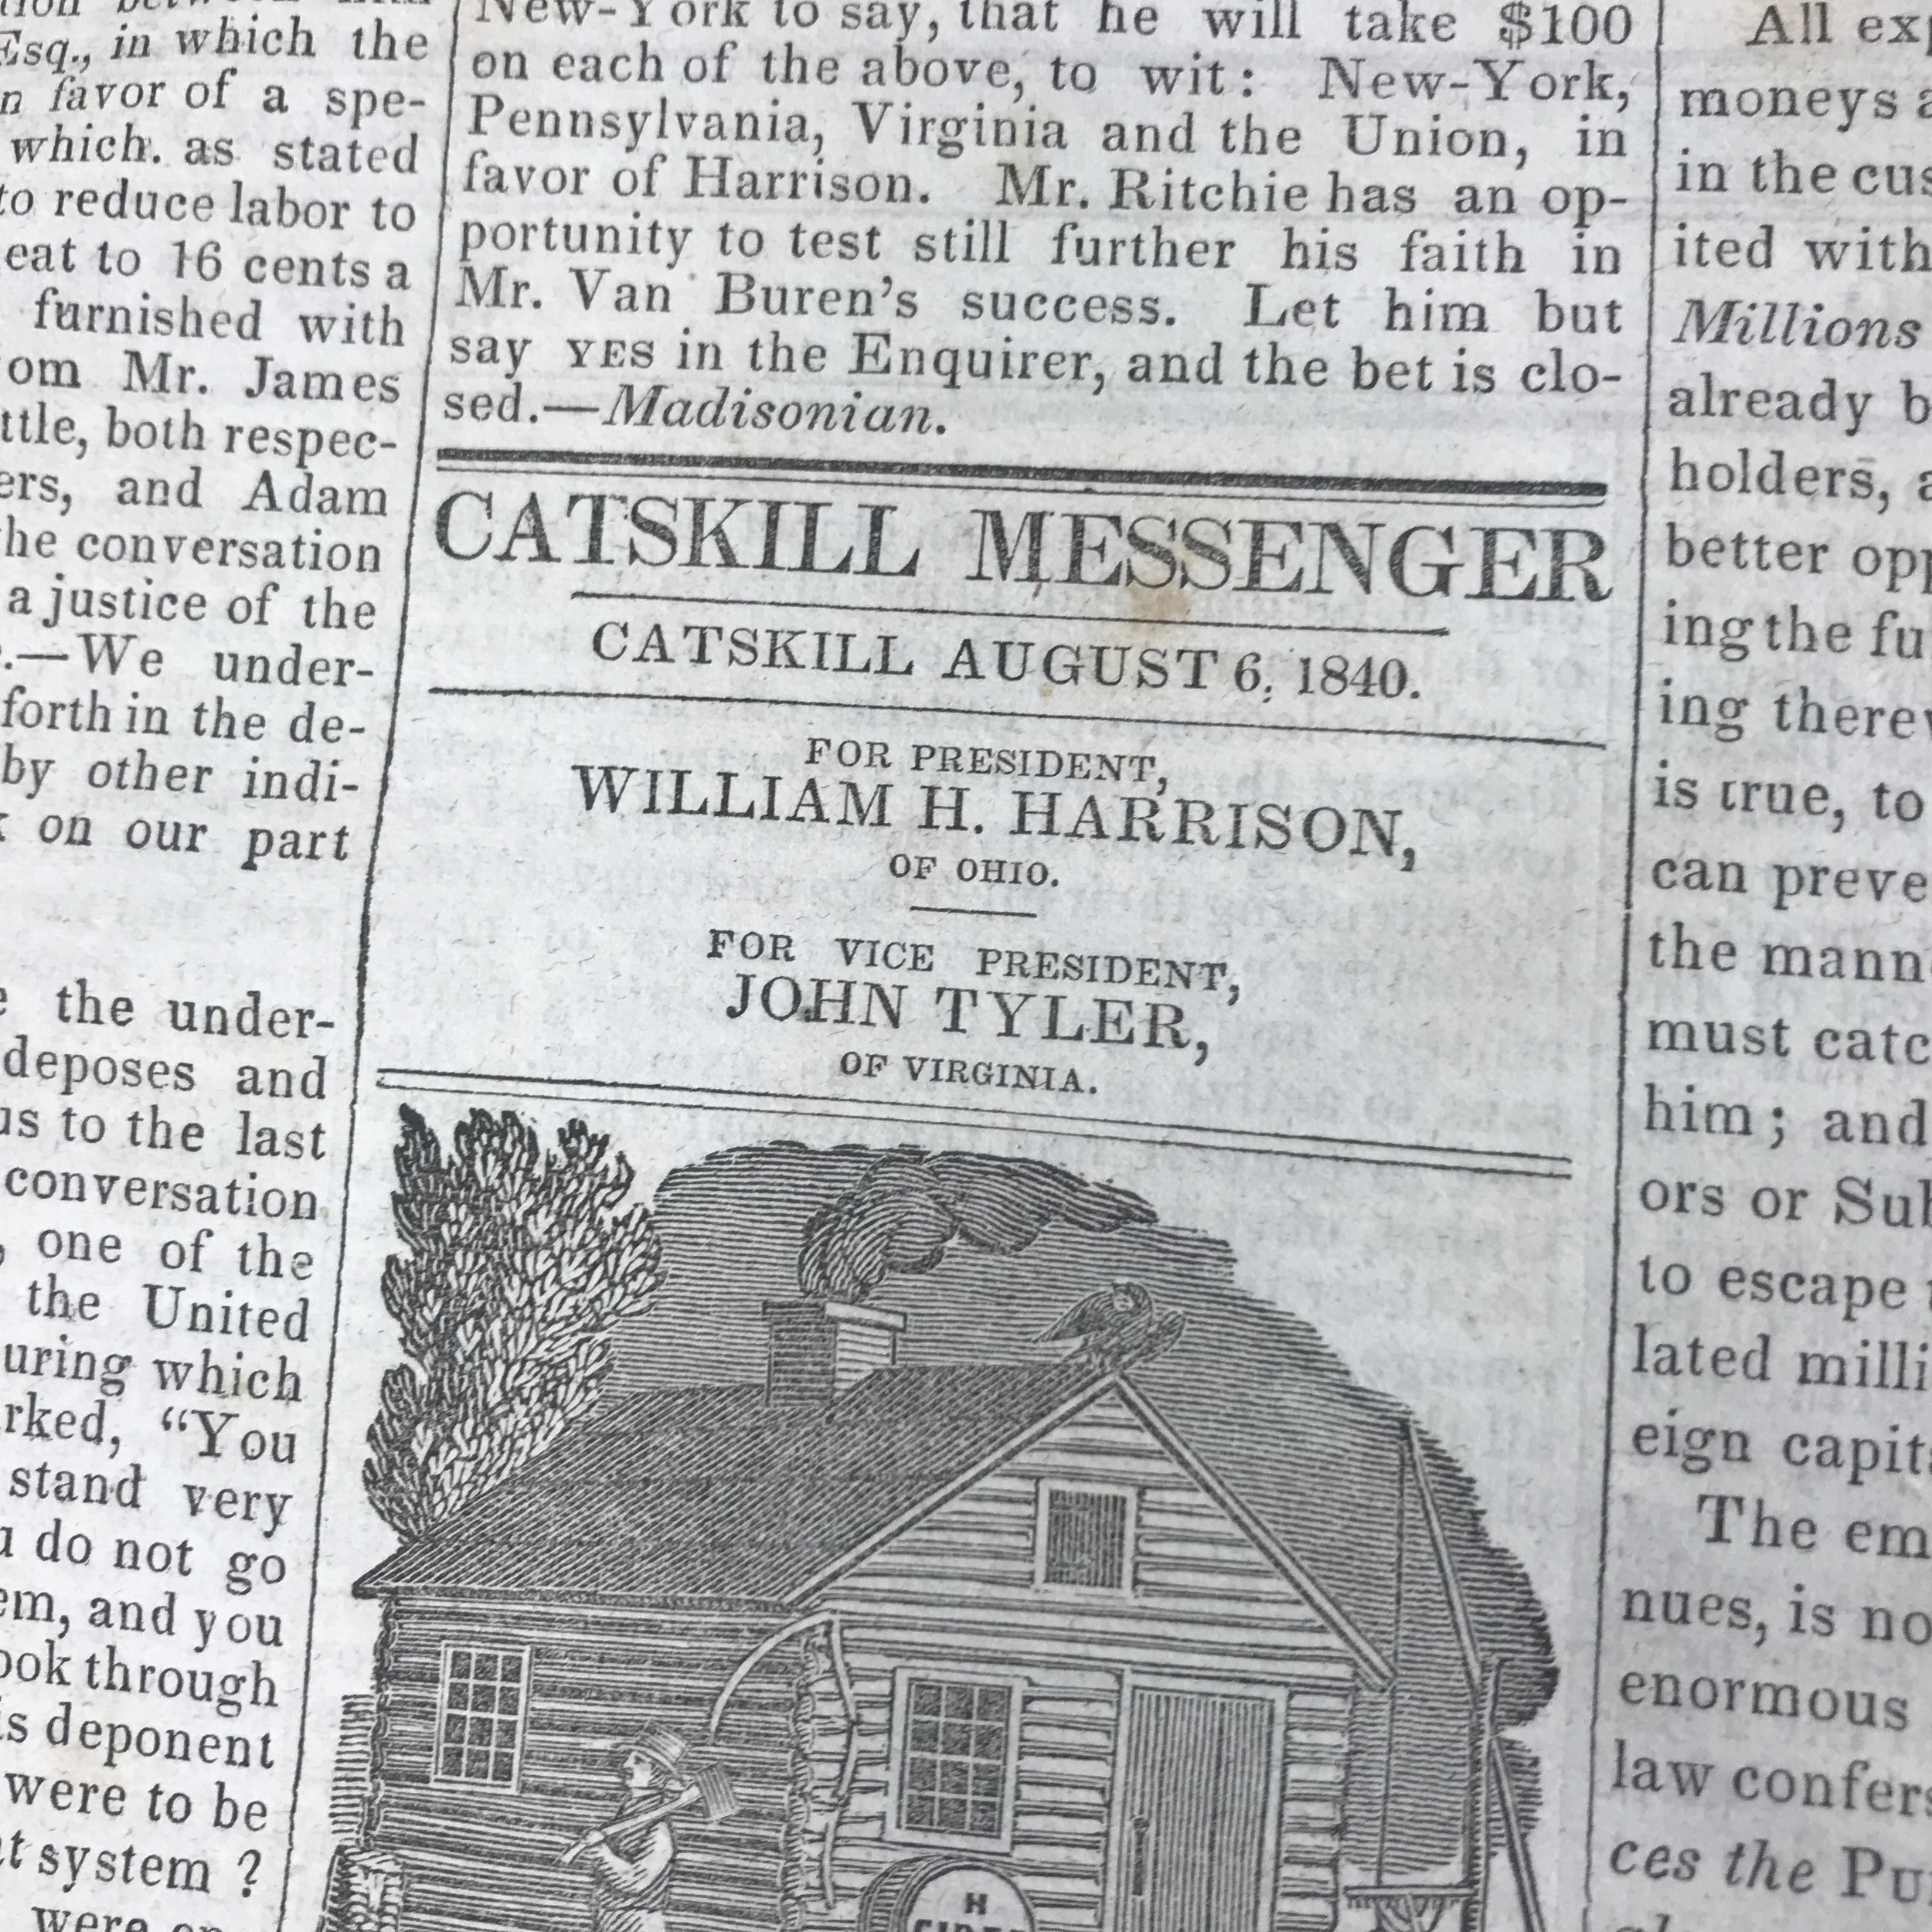 Photo of a column from the Catskill Messenger during Harrison's presidential campaign in 1840.